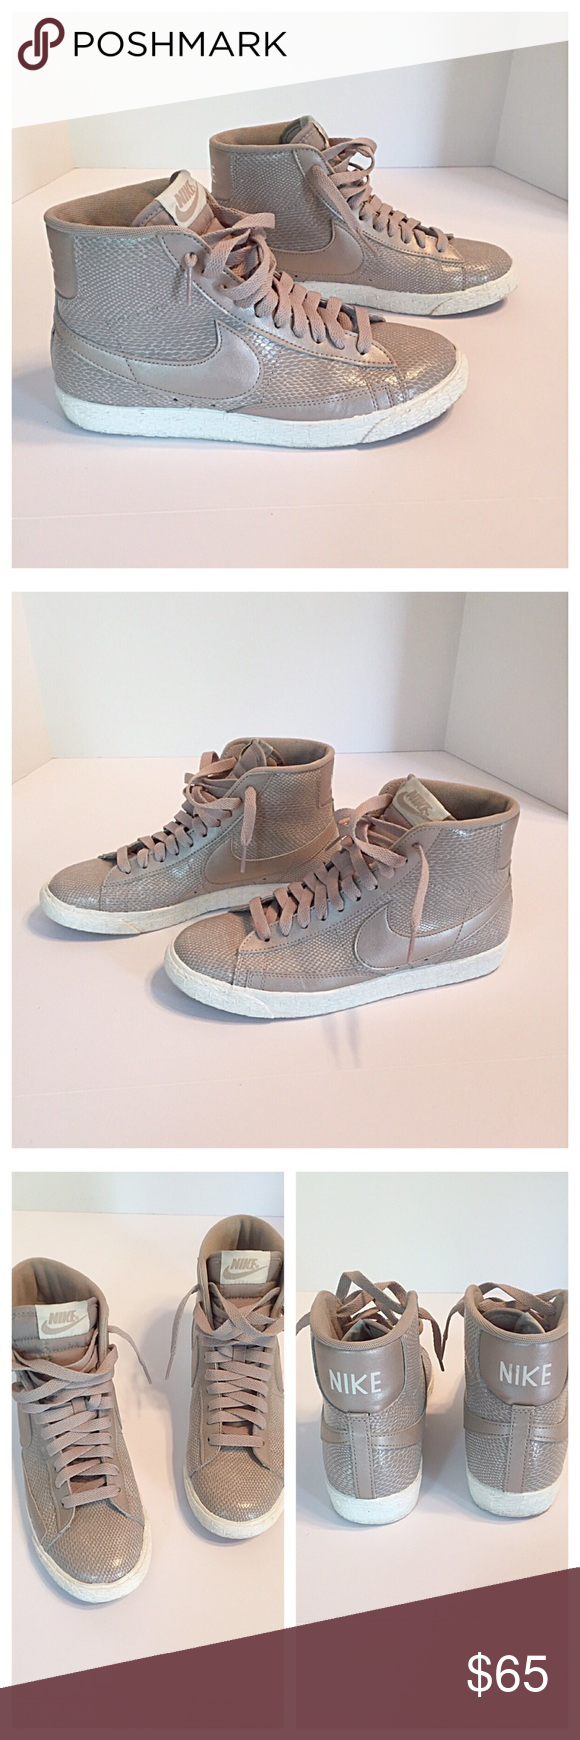 on sale 45898 b43d2 Nike Blazer Beige Snake Skin Sneakers Nike Light Orewood Brown  snake-stamped patent leather Blazer